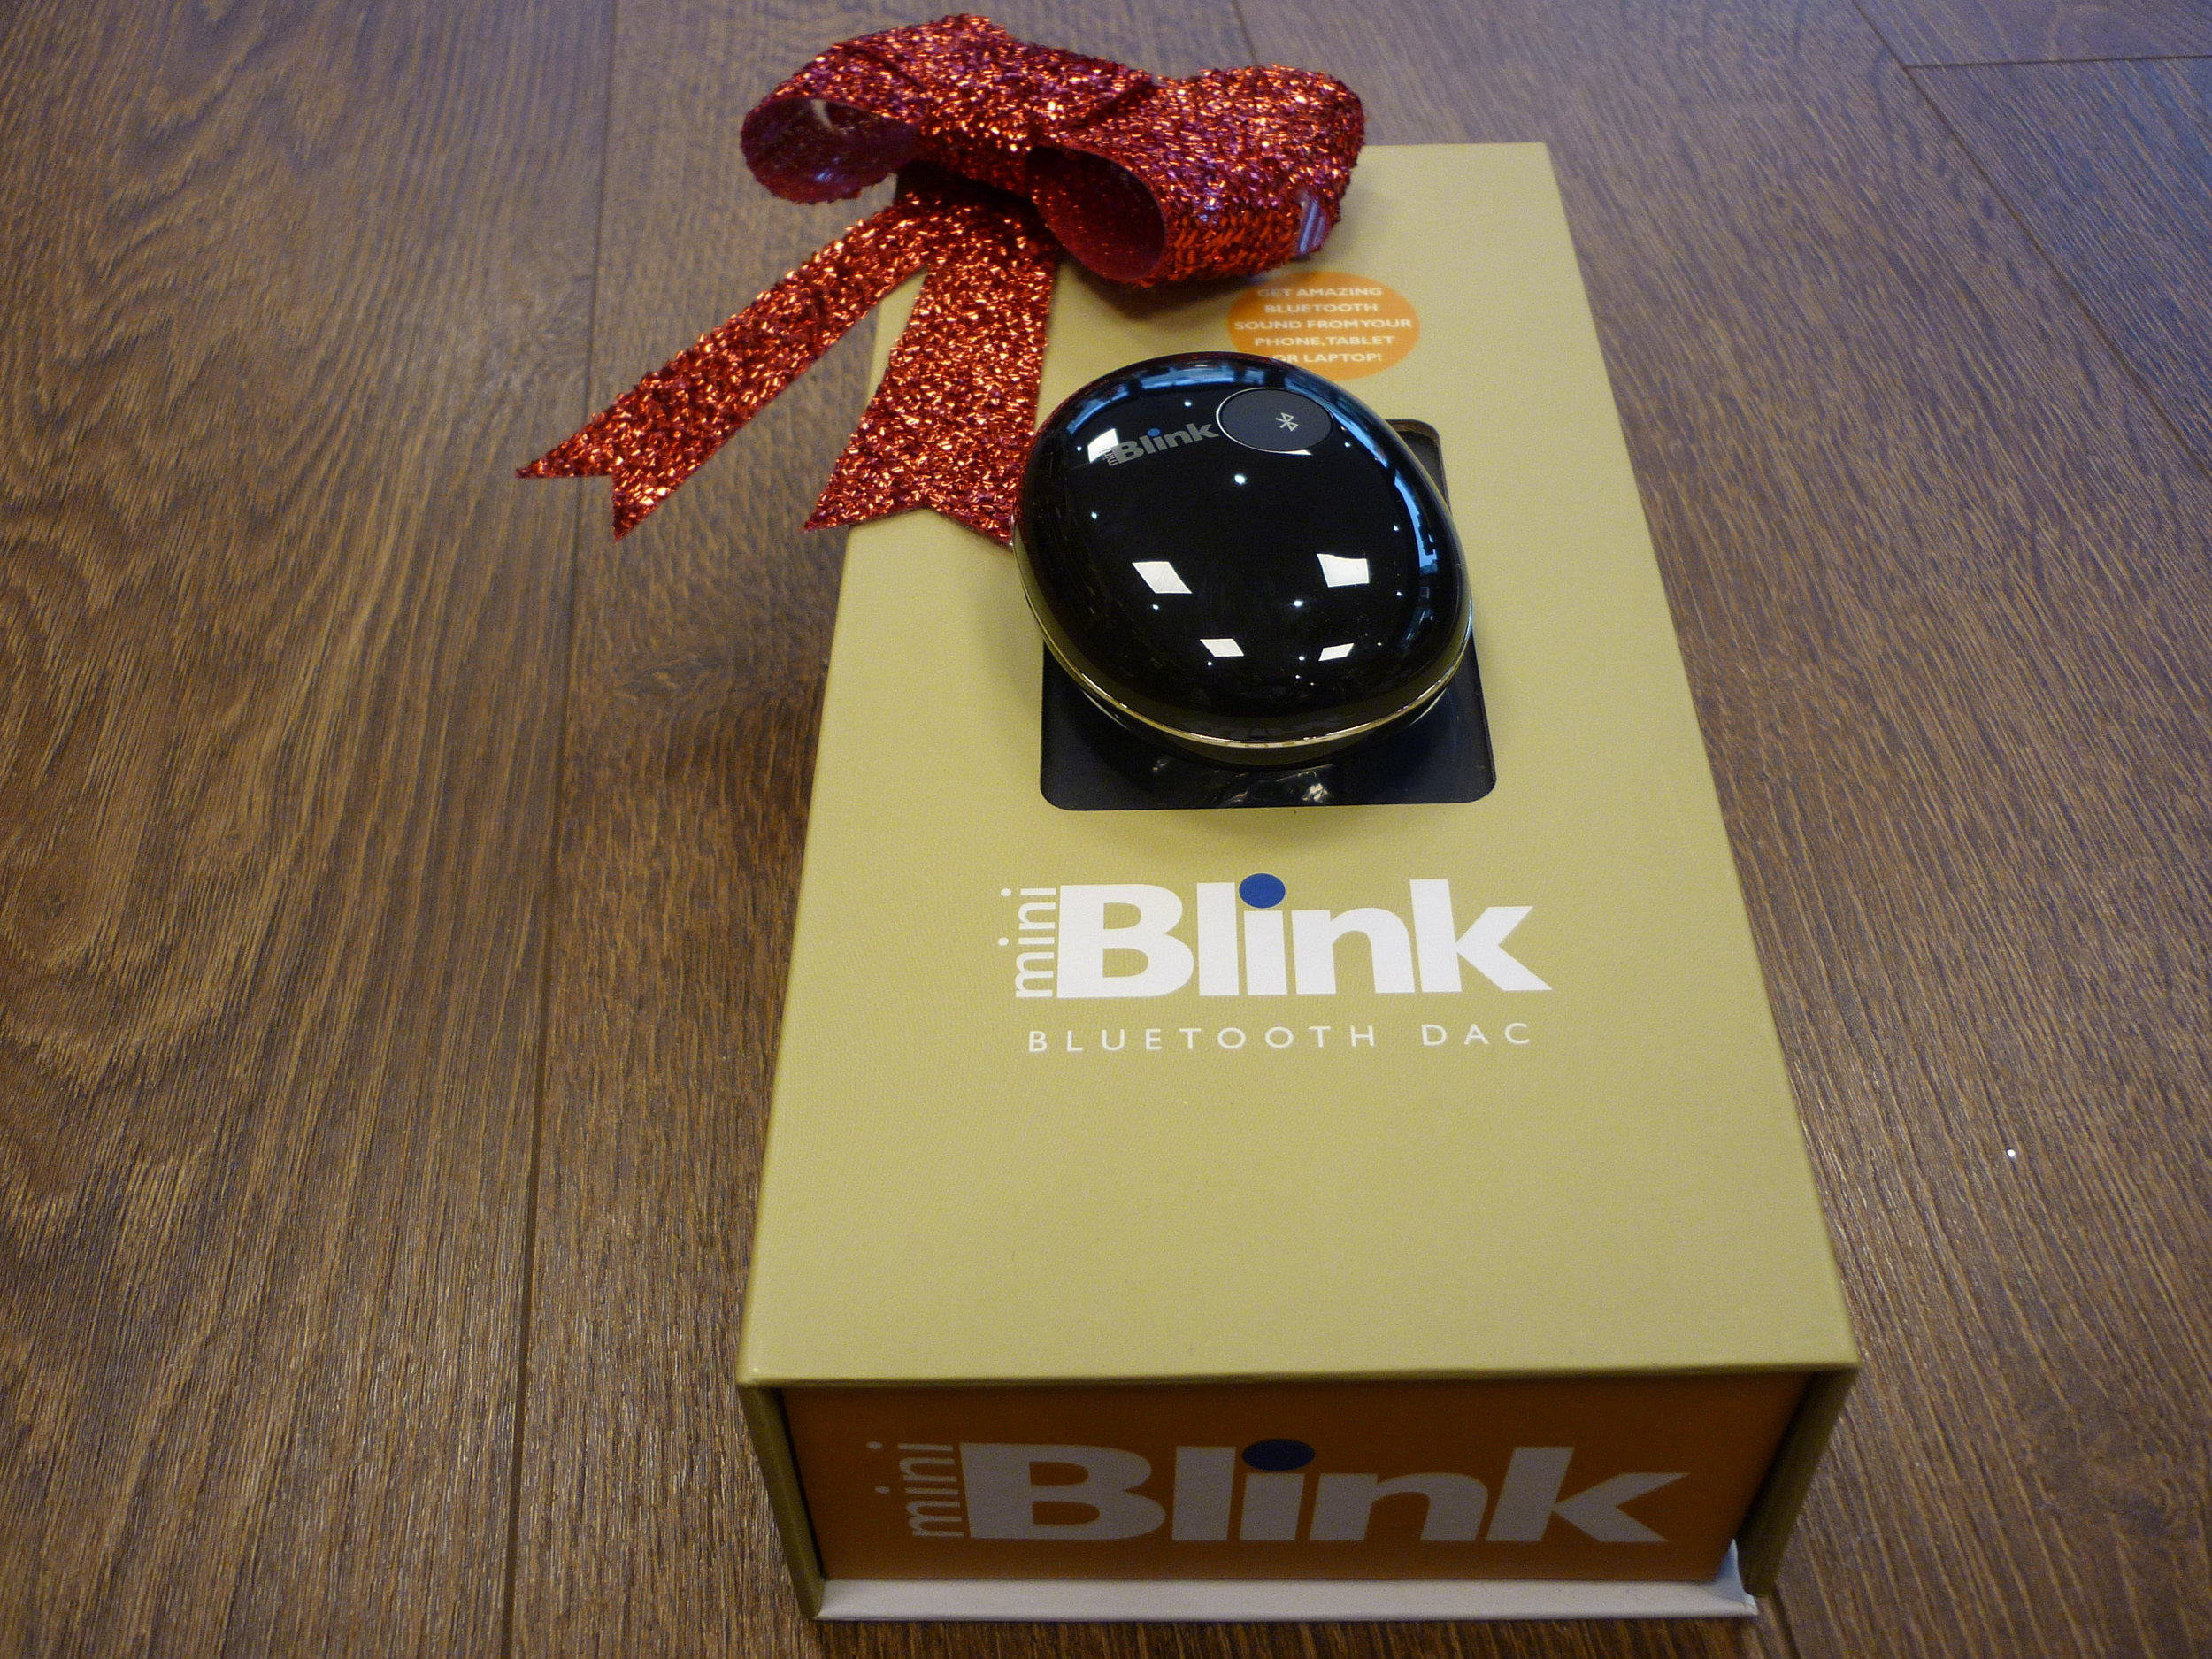 blink on box.JPG